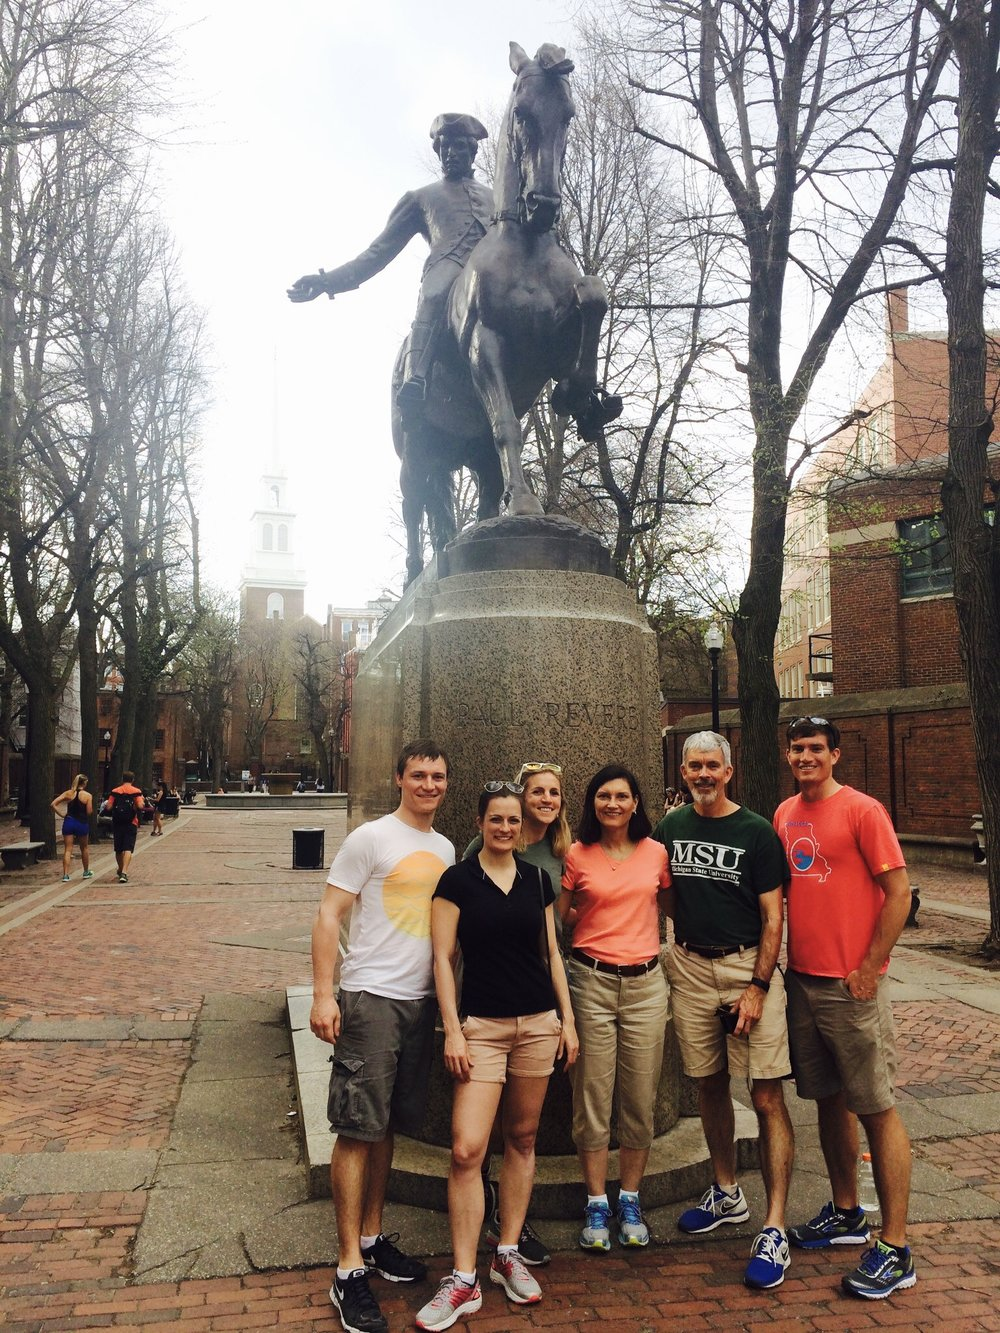 Our Freedom Trail crew!